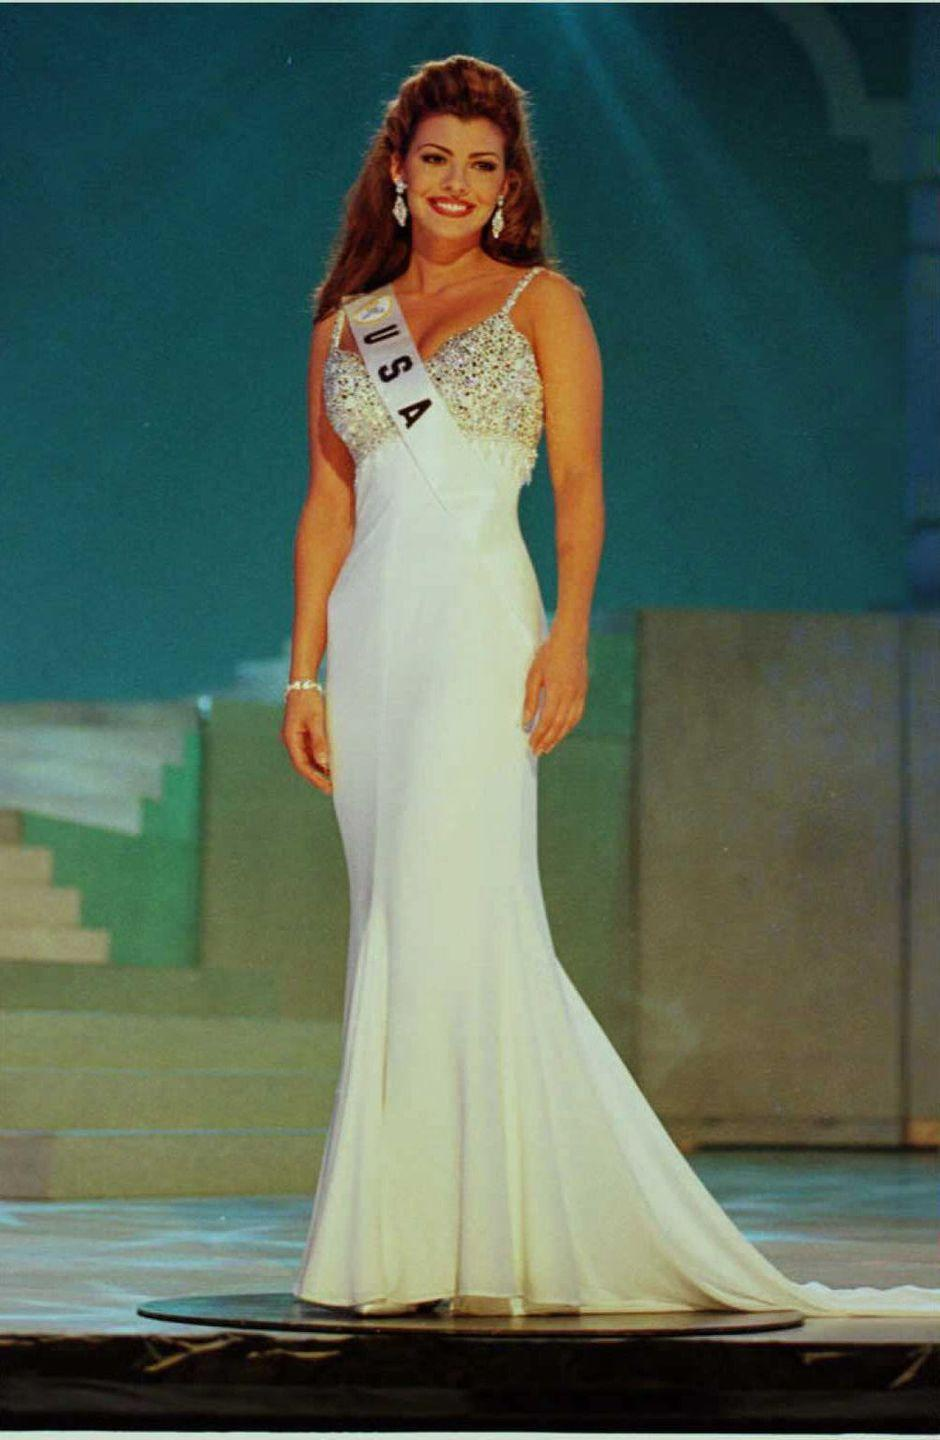 """<p>In 1996, Ali won the title of Miss USA while representing her native Louisiana in the competition. She was crowned by the outgoing Miss USA, <a href=""""https://www.youtube.com/watch?v=lhiQC3M2kV8"""" rel=""""nofollow noopener"""" target=""""_blank"""" data-ylk=""""slk:Shanna Moakler"""" class=""""link rapid-noclick-resp"""">Shanna Moakler</a>. </p>"""